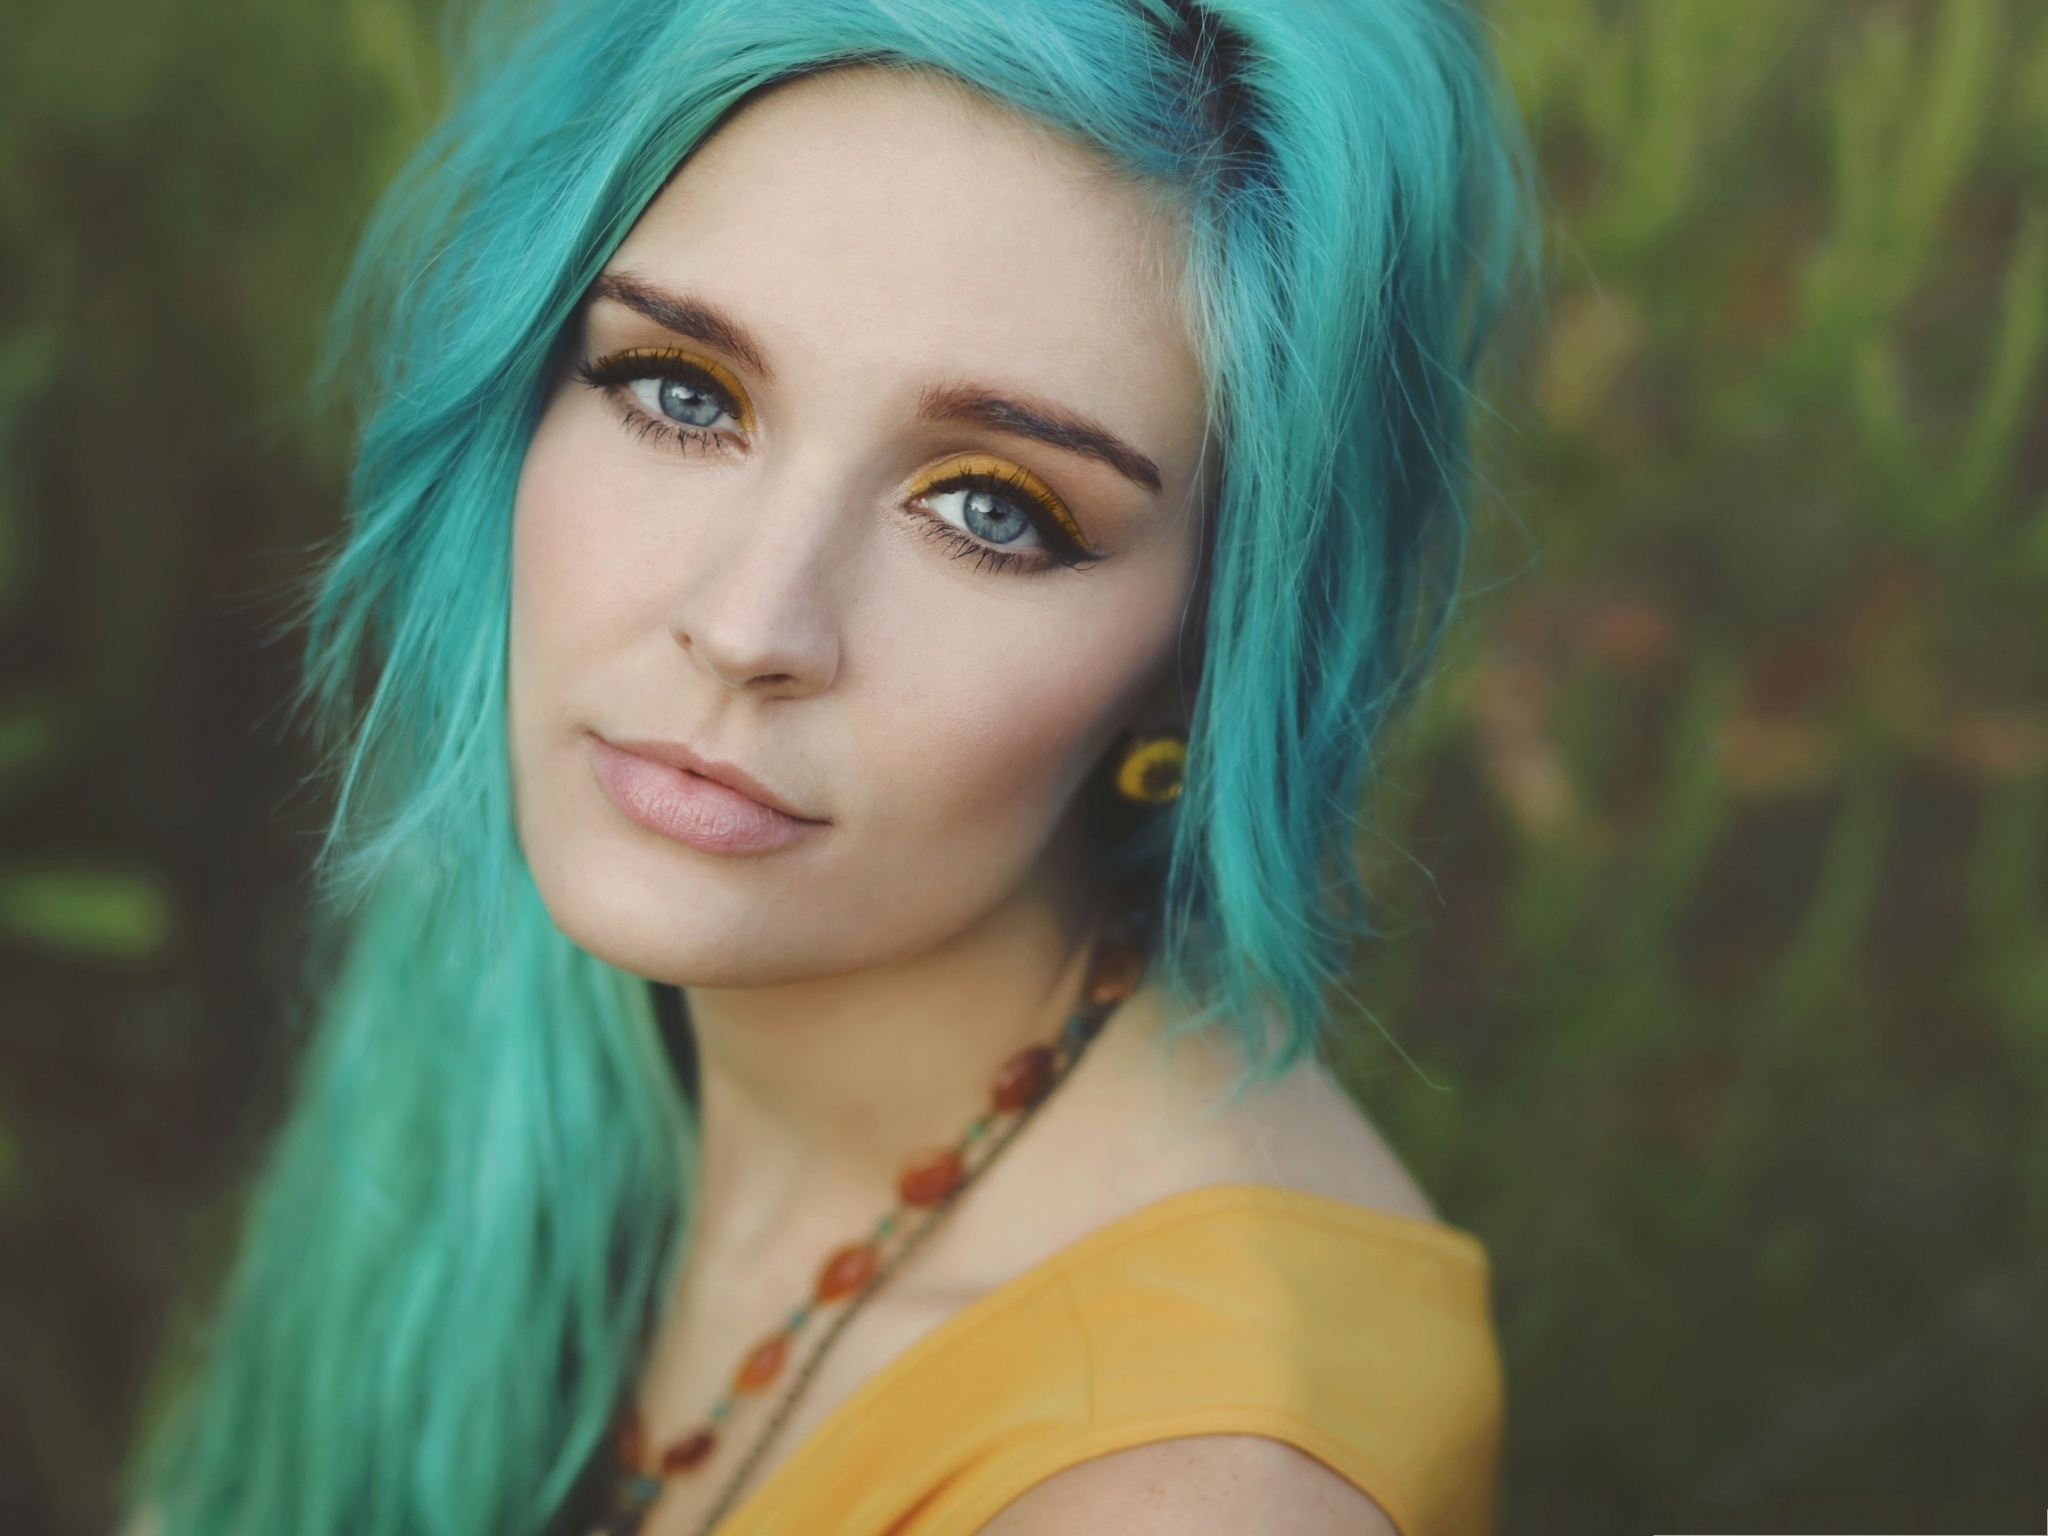 Exotic Girls Image Beautiful Girl In Blue Hair She Is Impressive